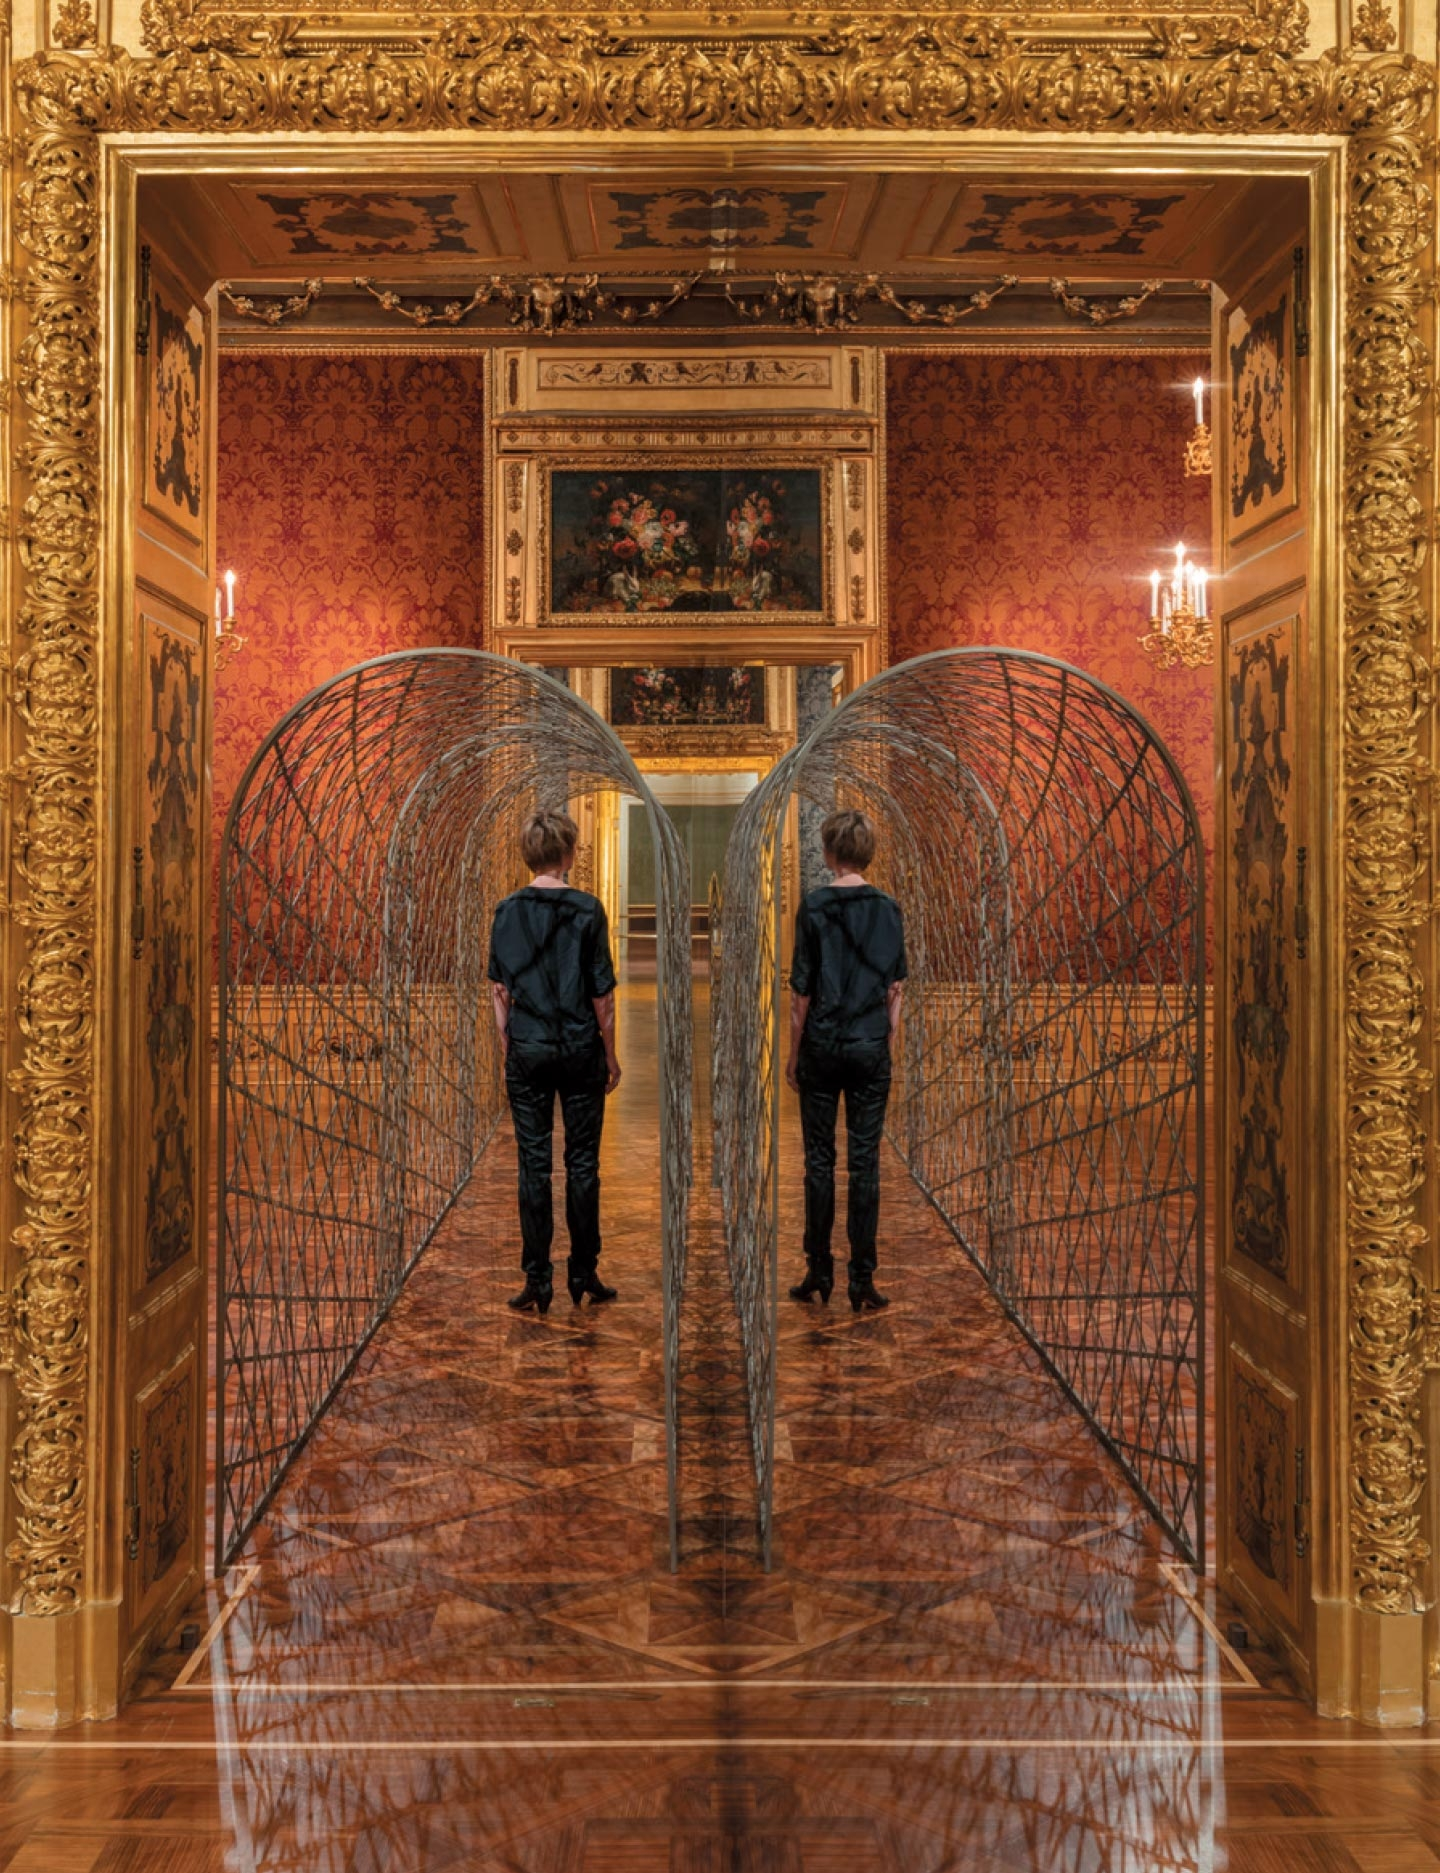 <strong>'Fivefold tunnel'</strong>, 2000, Stainless steel, 2,20×1,10×11m, The Winter Palace of Prince Eugene of Savoy, Vienna 2015, Photo: Anders Sune Berg, Courtesy of Thyssen-Bornemisza Art Contemporary Collection, Vienna © Olafur